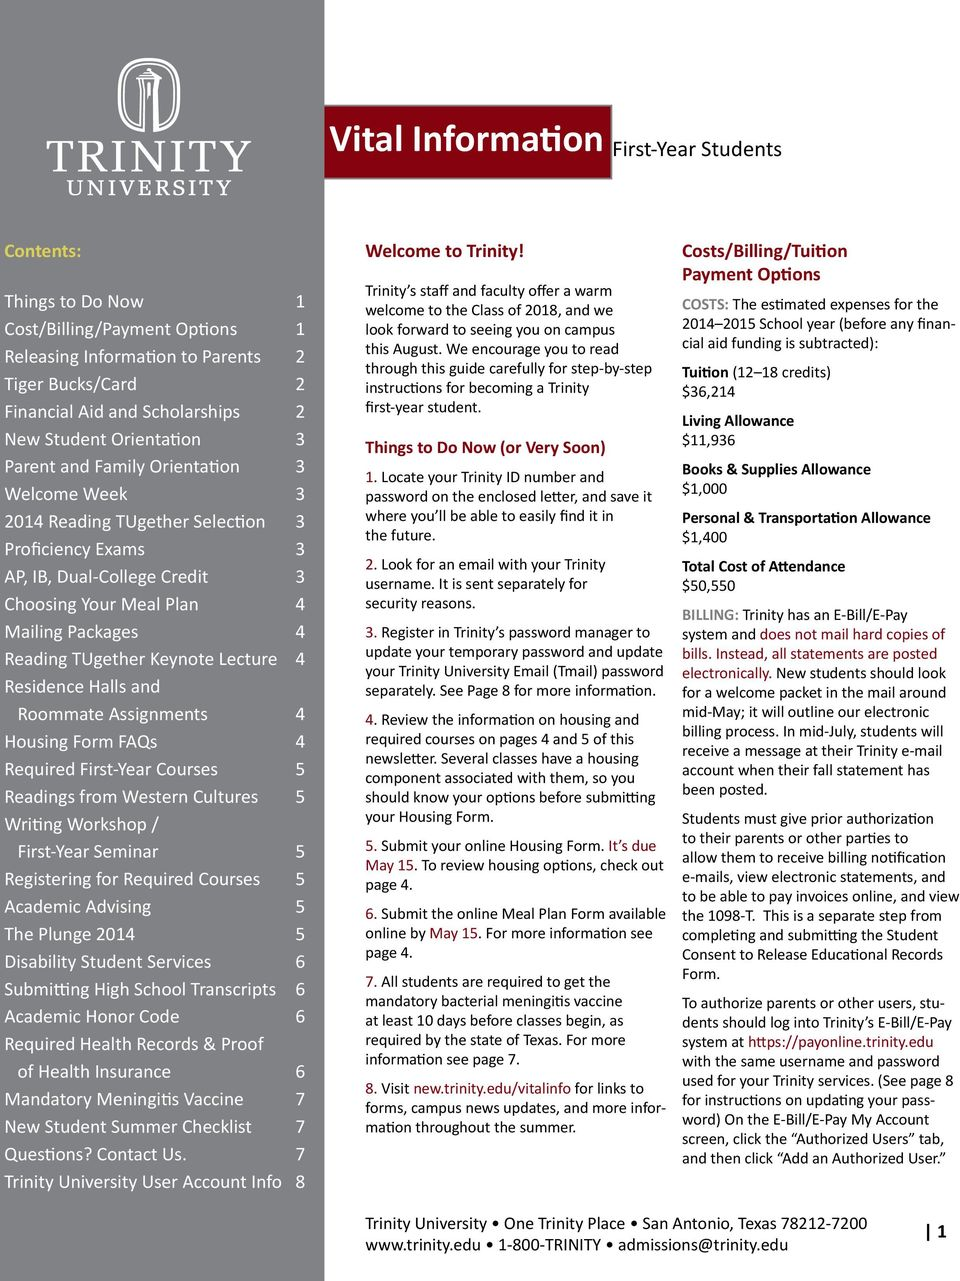 TUgether Keynote Lecture 4 Residence Halls and Roommate Assignments 4 Housing Form FAQs 4 Required First-Year Courses 5 Readings from Western Cultures 5 Writing Workshop / First-Year Seminar 5